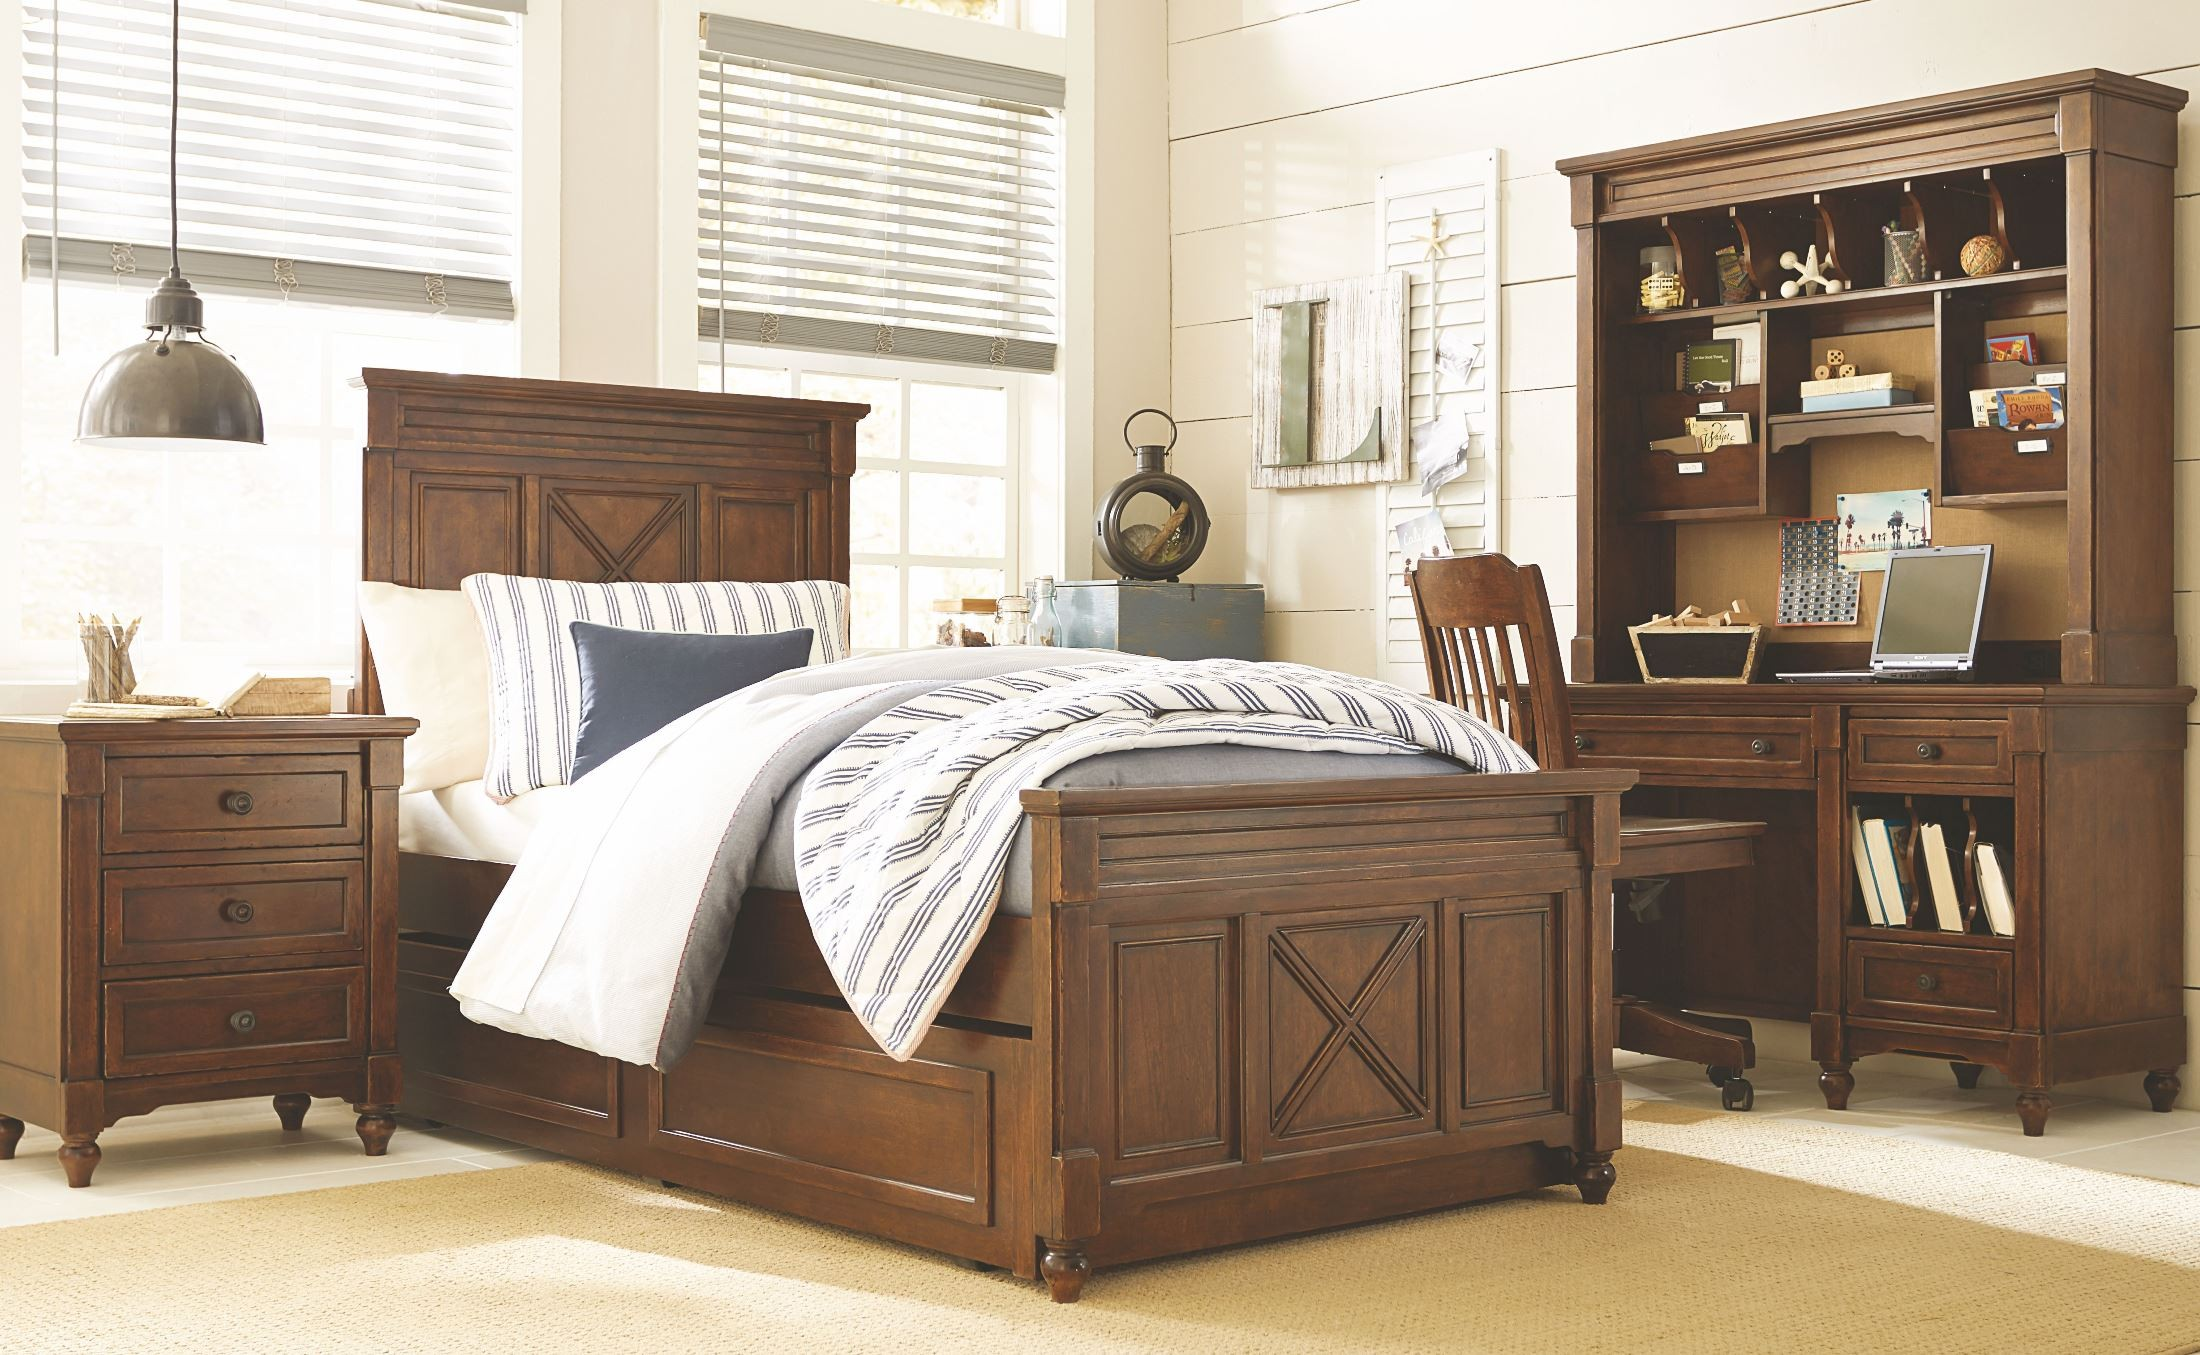 Big sur saddle brown drawer dresser with hutch from